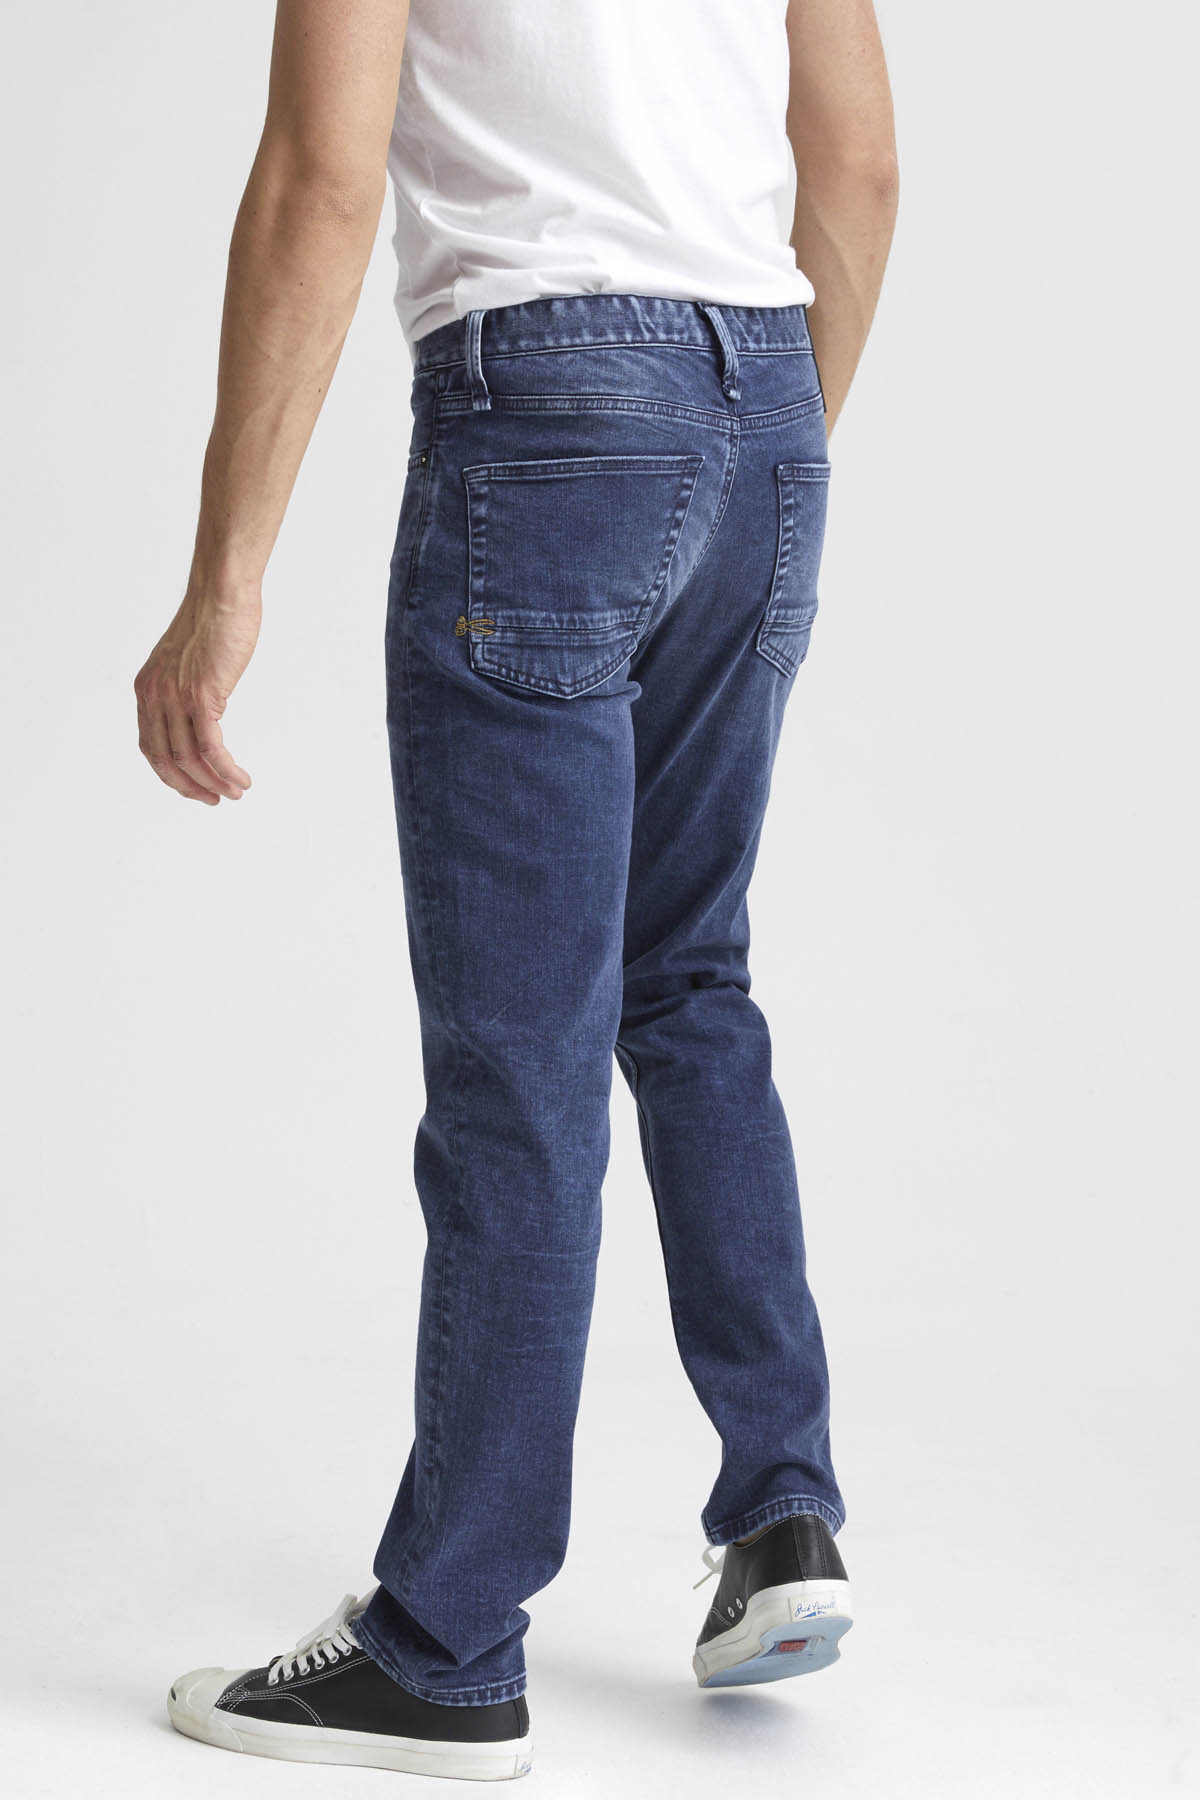 Razor - Slim Fit Jeans - Back